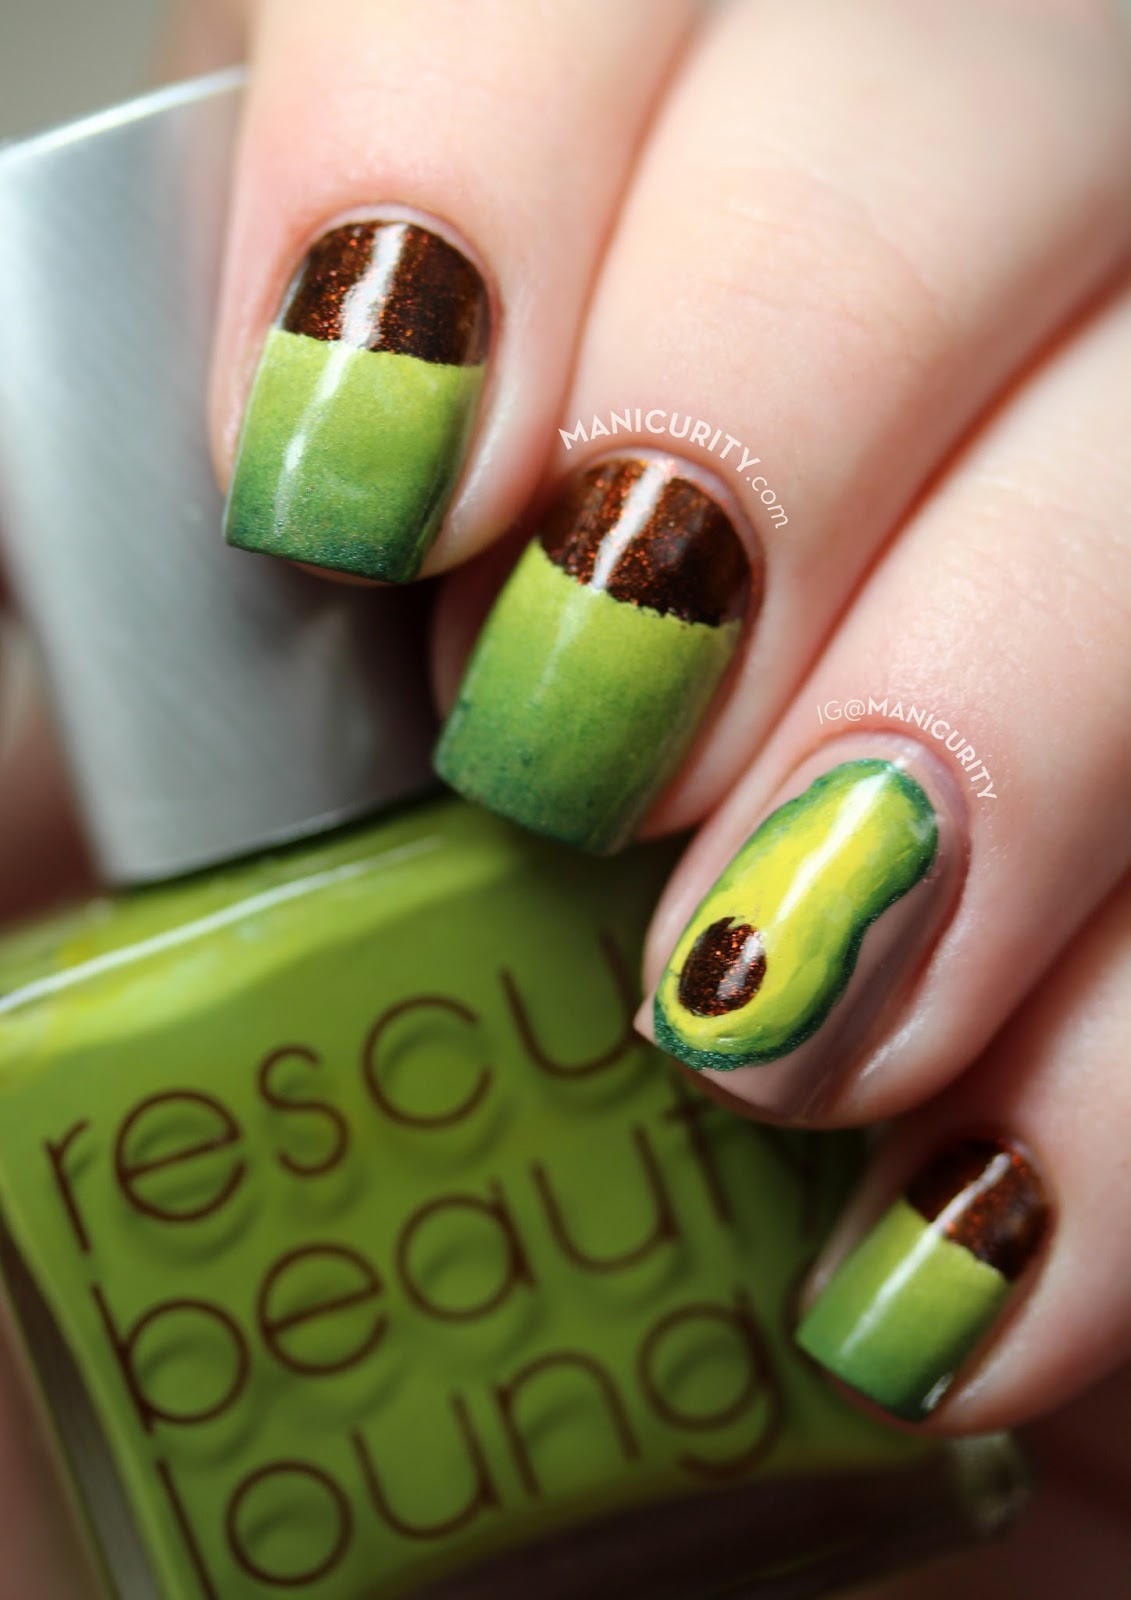 The Digit-al Dozen does Vintage: Ode to Avocado Nails - half moon and freehand avocado-inspired nail art | Manicurity.com